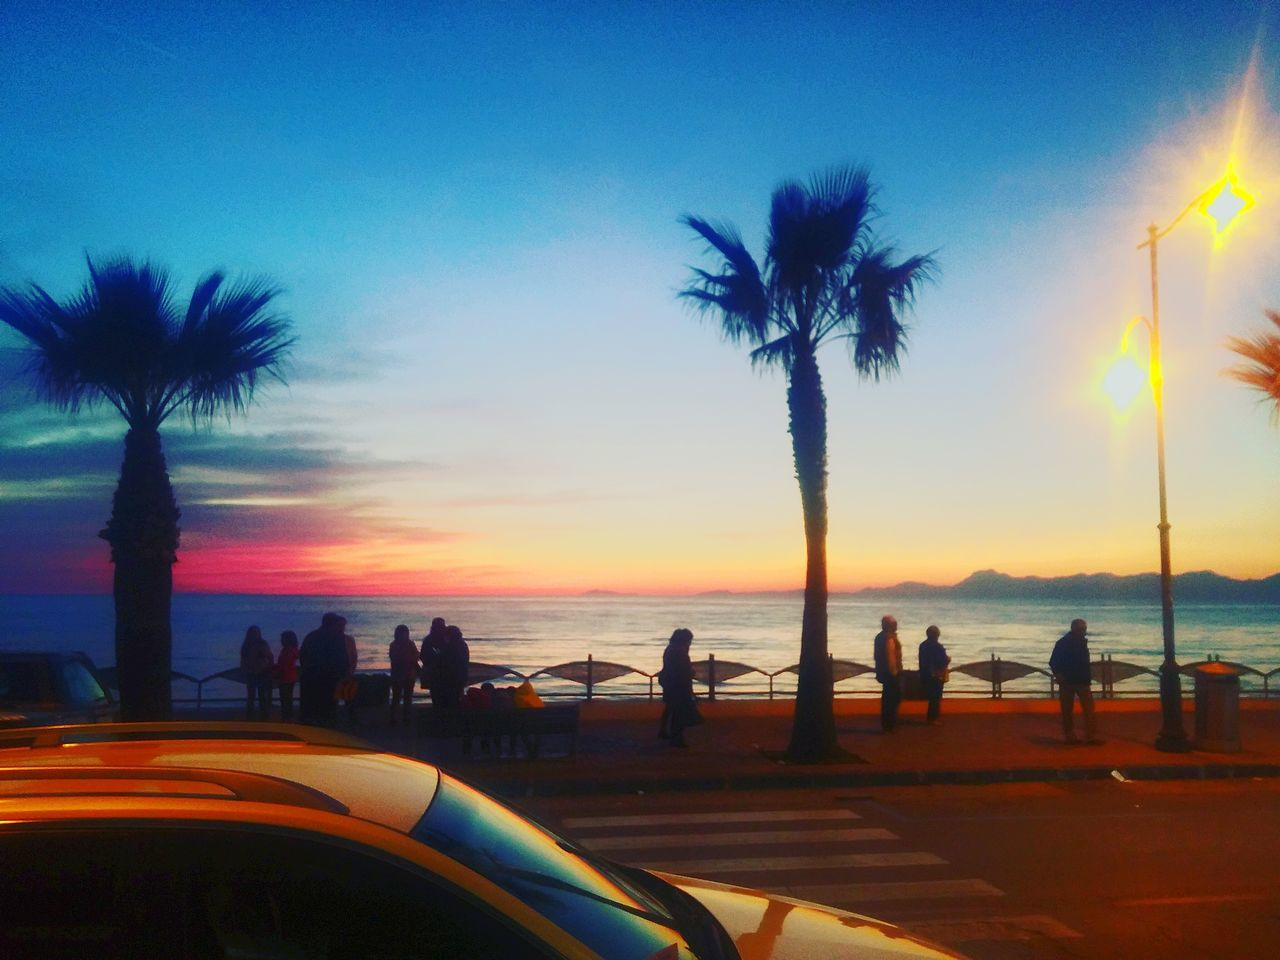 palm tree, sunset, silhouette, sea, tree, beach, scenics, sky, nature, water, beauty in nature, leisure activity, large group of people, real people, outdoors, men, vacations, lifestyles, women, horizon over water, day, people